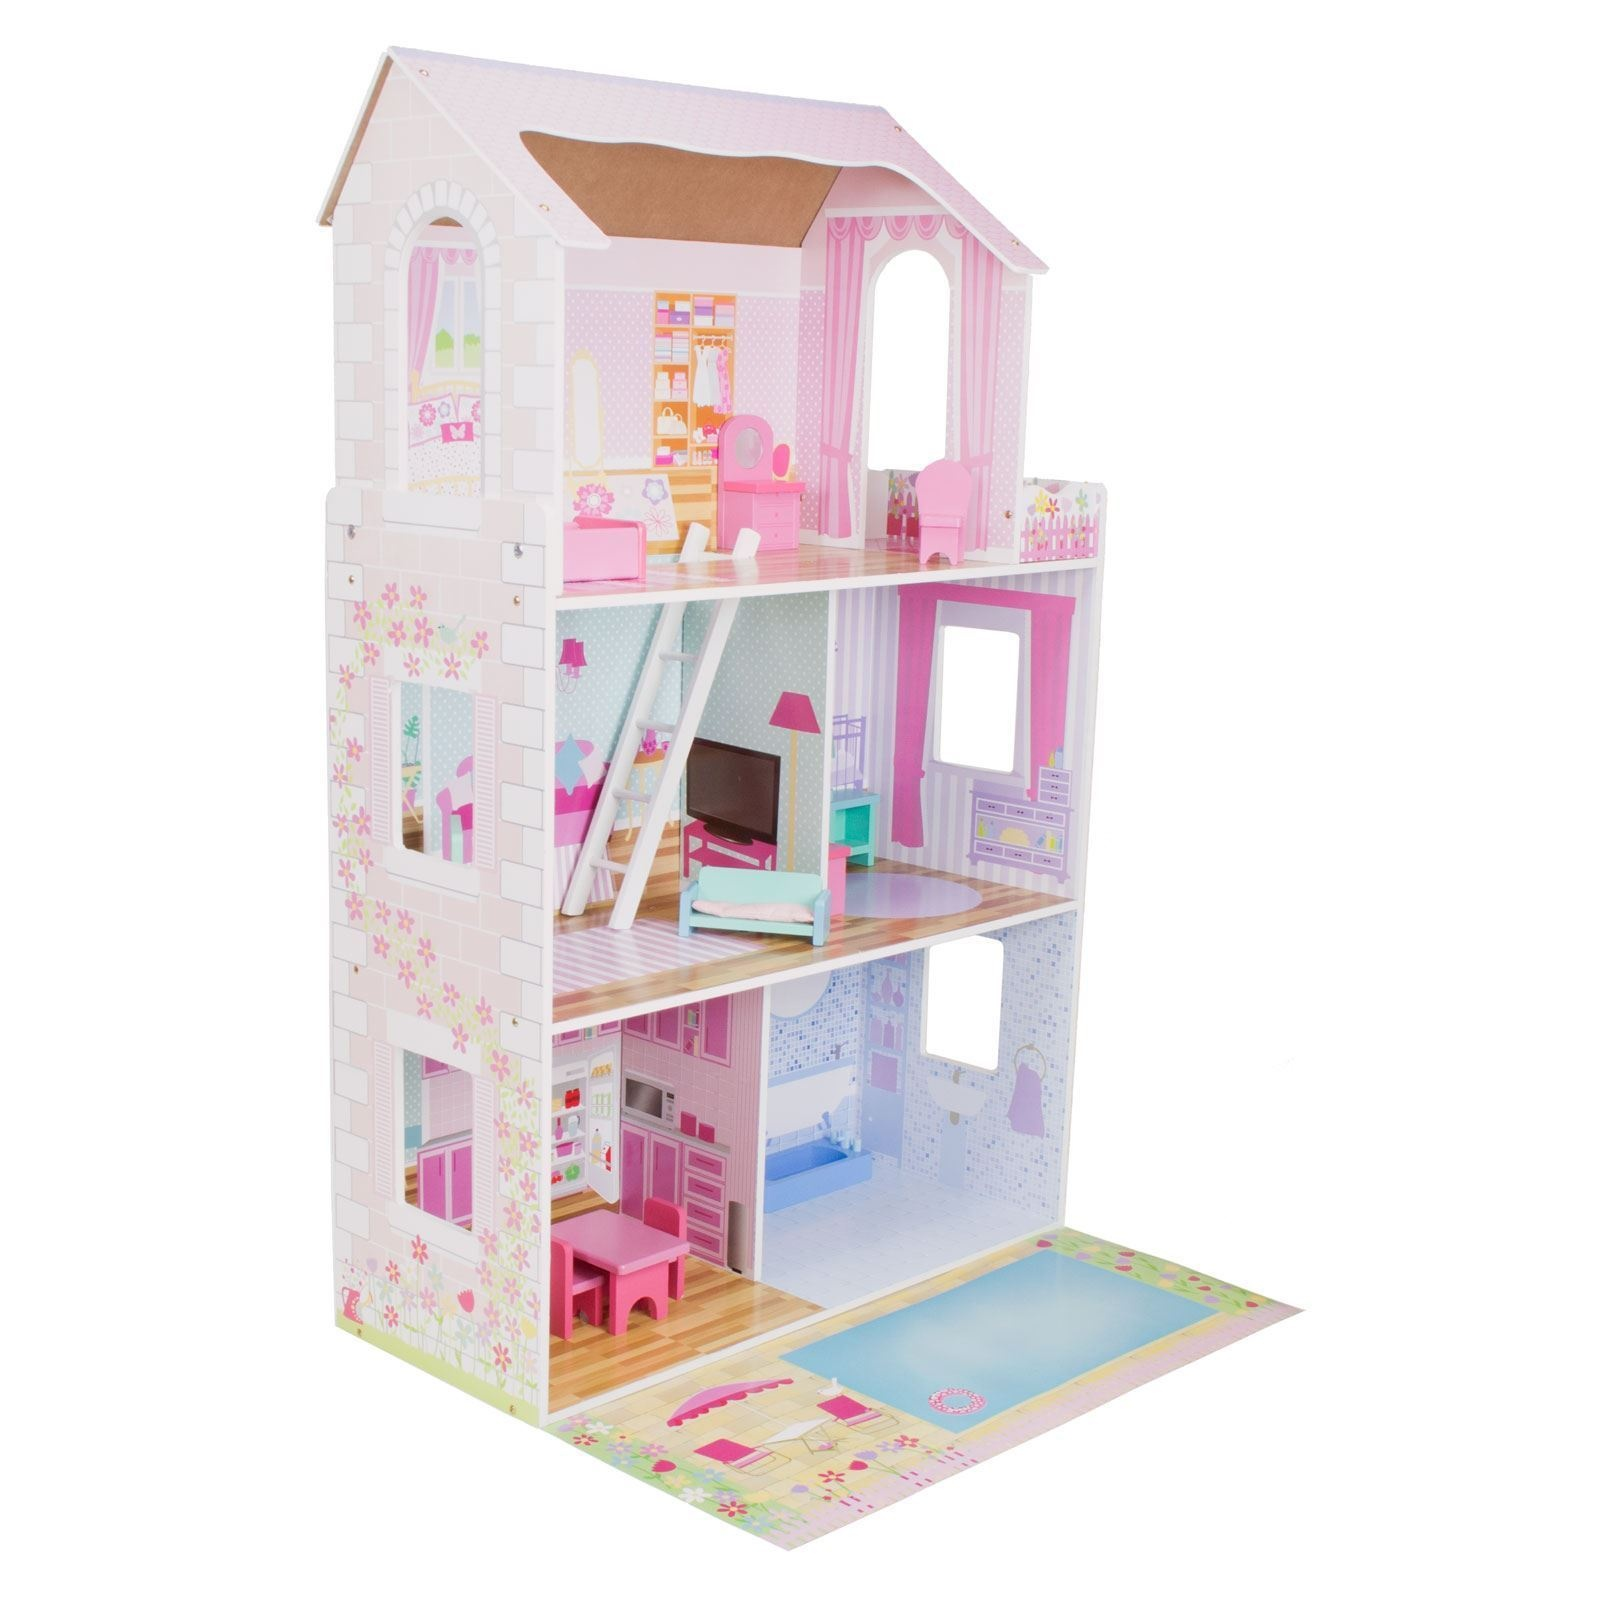 Boppi Childrens Girls Wooden Toy Barbie Dolls House With 15